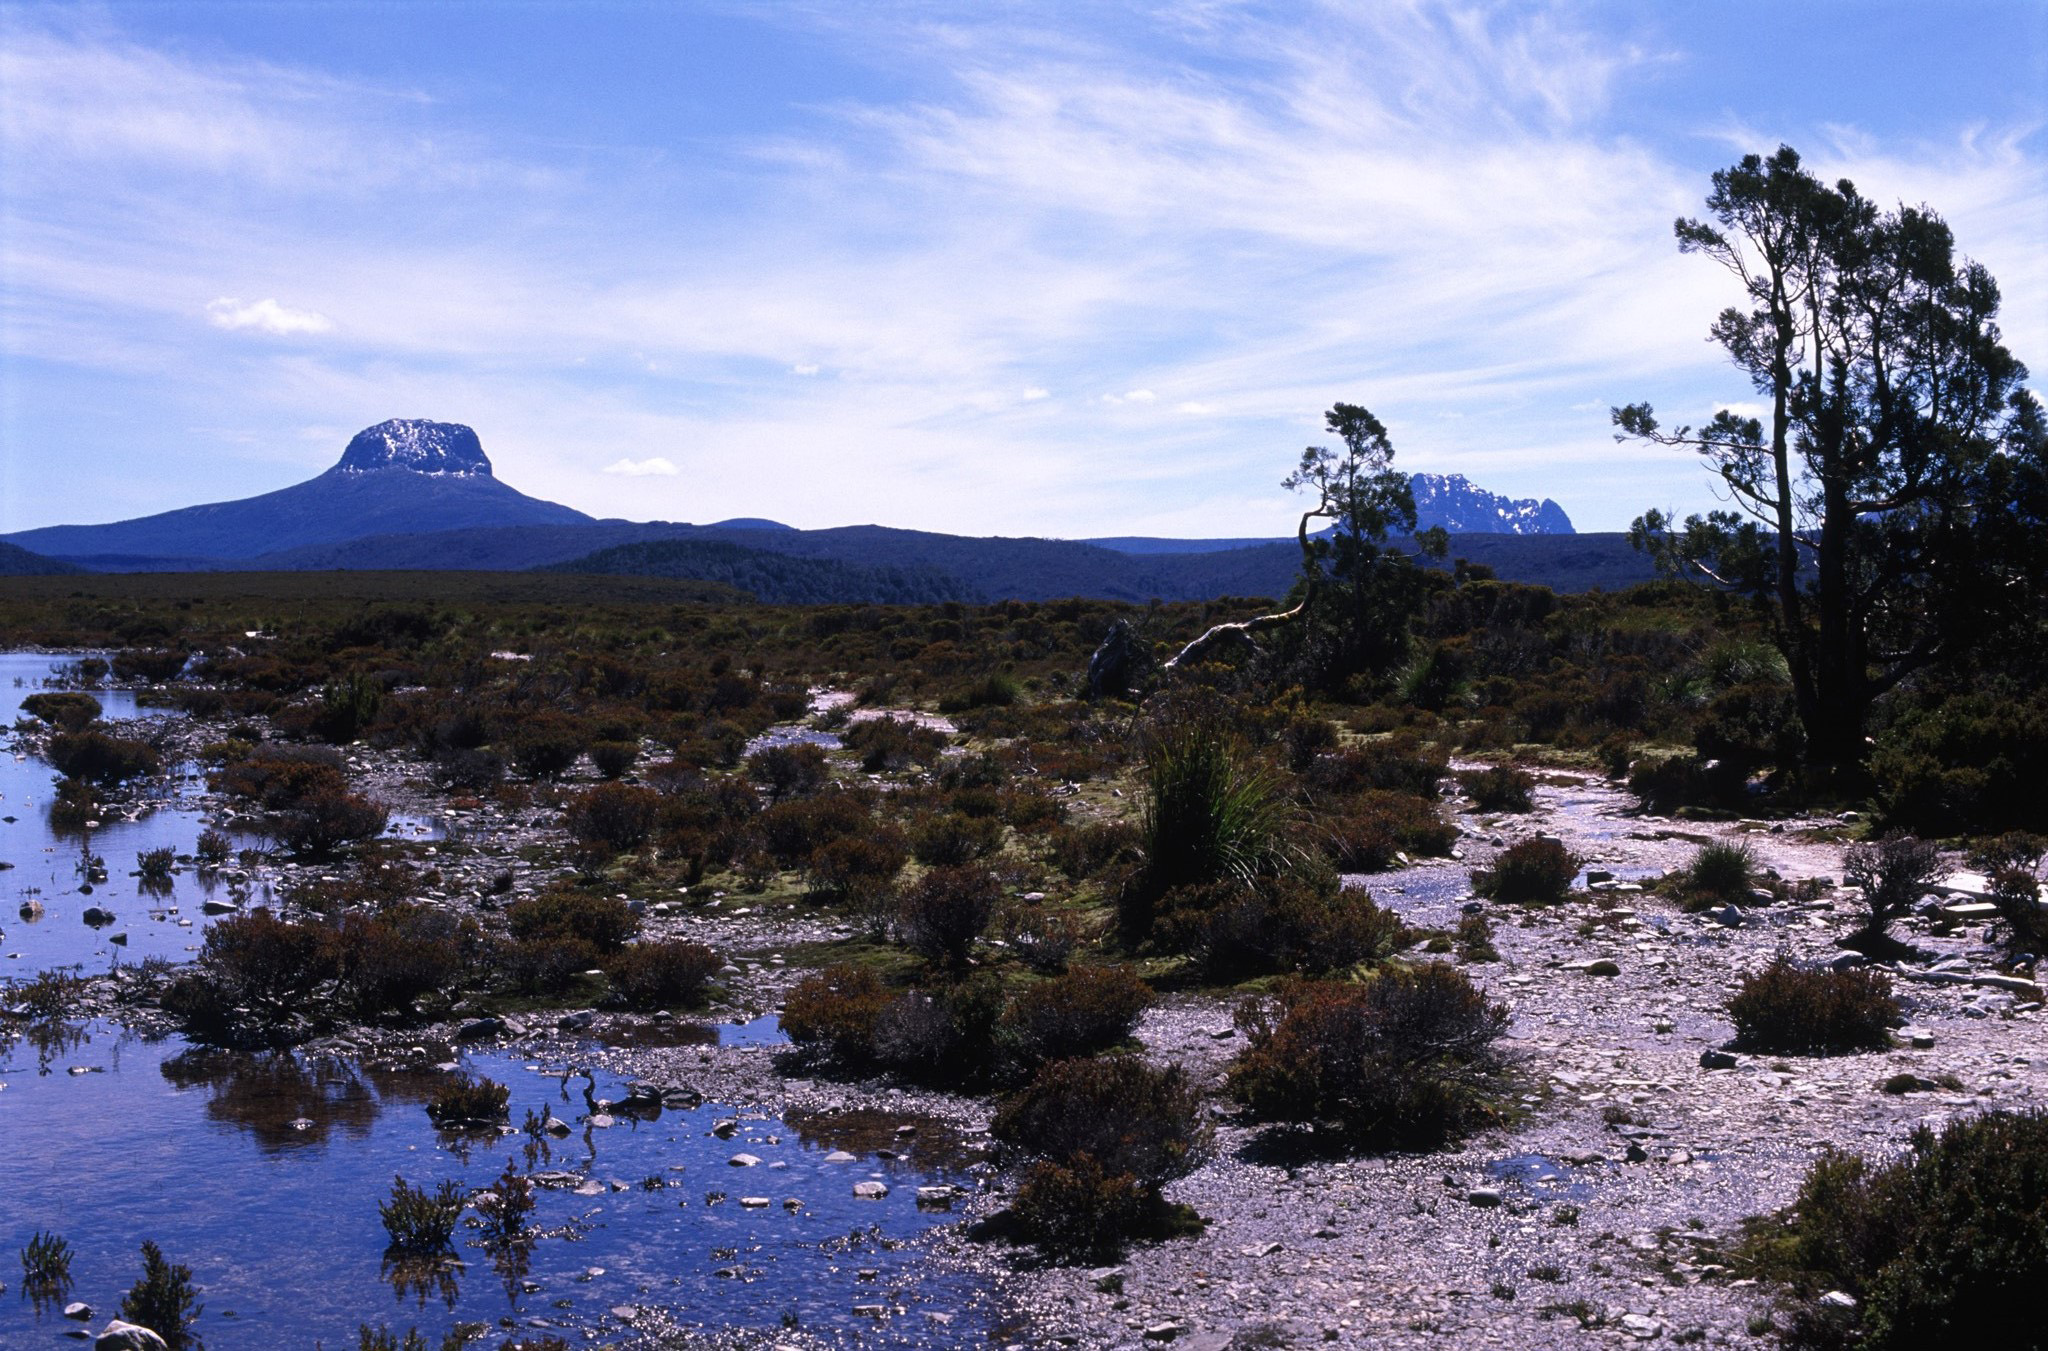 Reflections in the water flats and marshes in Tasmania on the Overland Trail with a distant view of Barn Bluff